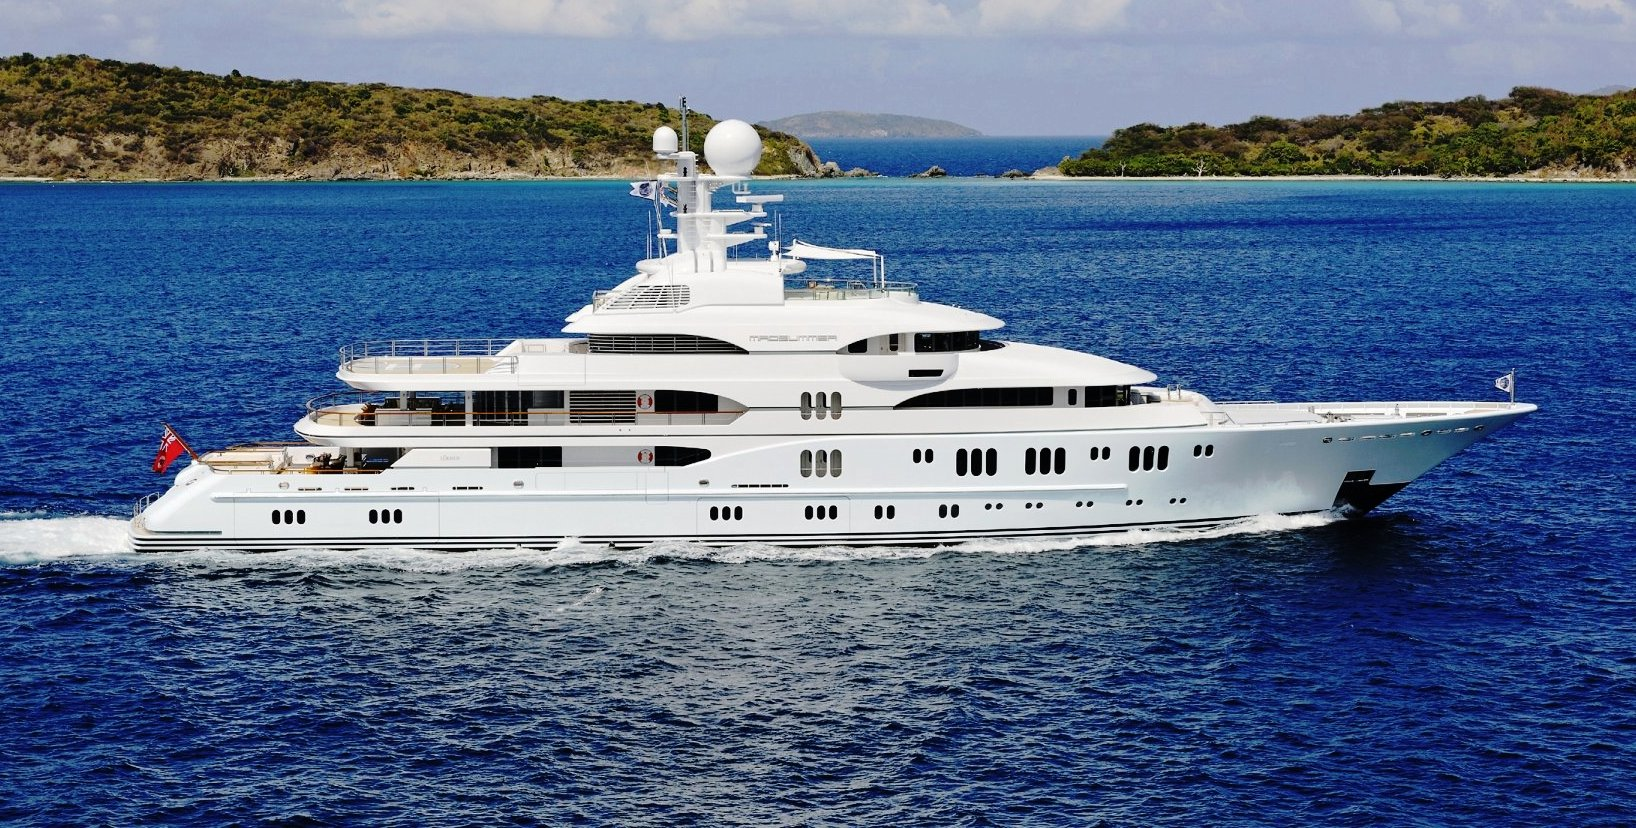 Motor Yacht Tv Available For Luxury Yacht Charter In The